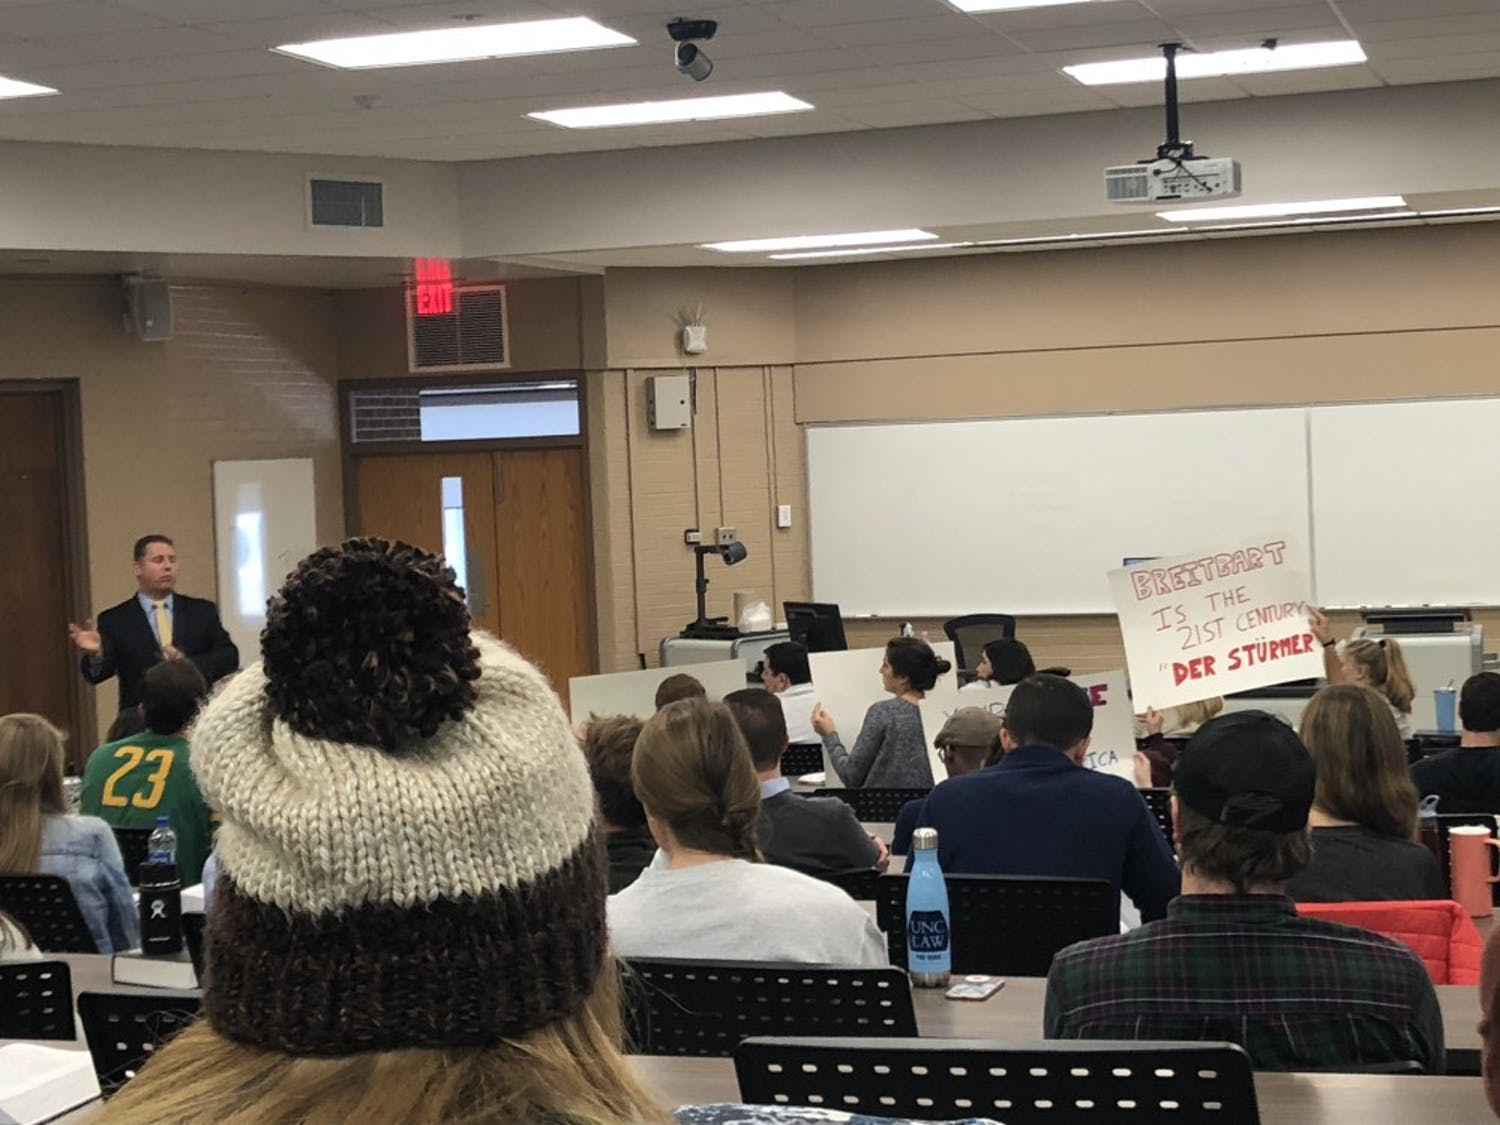 Ken Klukowski, senior legal editor for Breitbart New Network lectures at UNC School of Law amidst protests at noon on Tuesday.